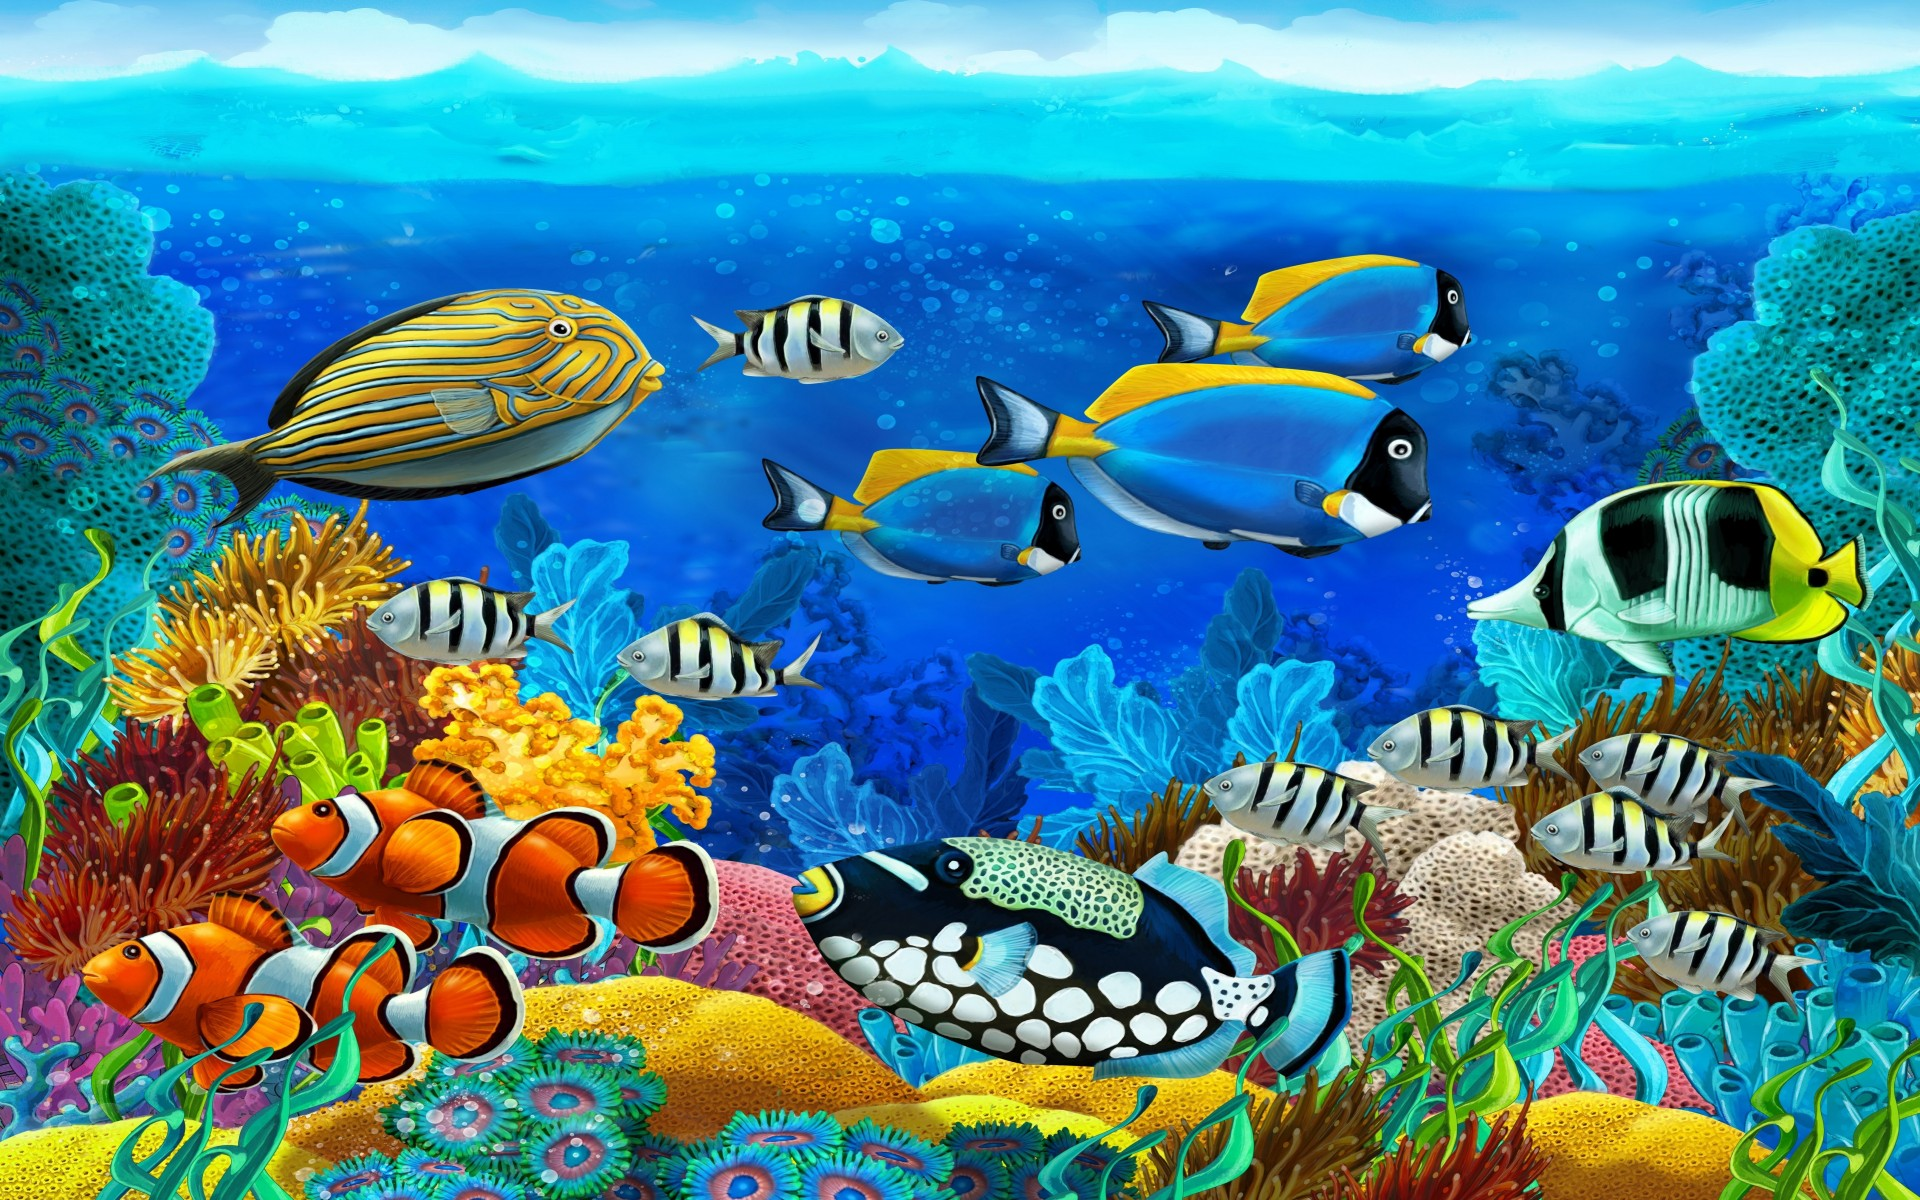 Ocean Marine Animals Barrier Reef Tropical Colorful Fish 1920x1200